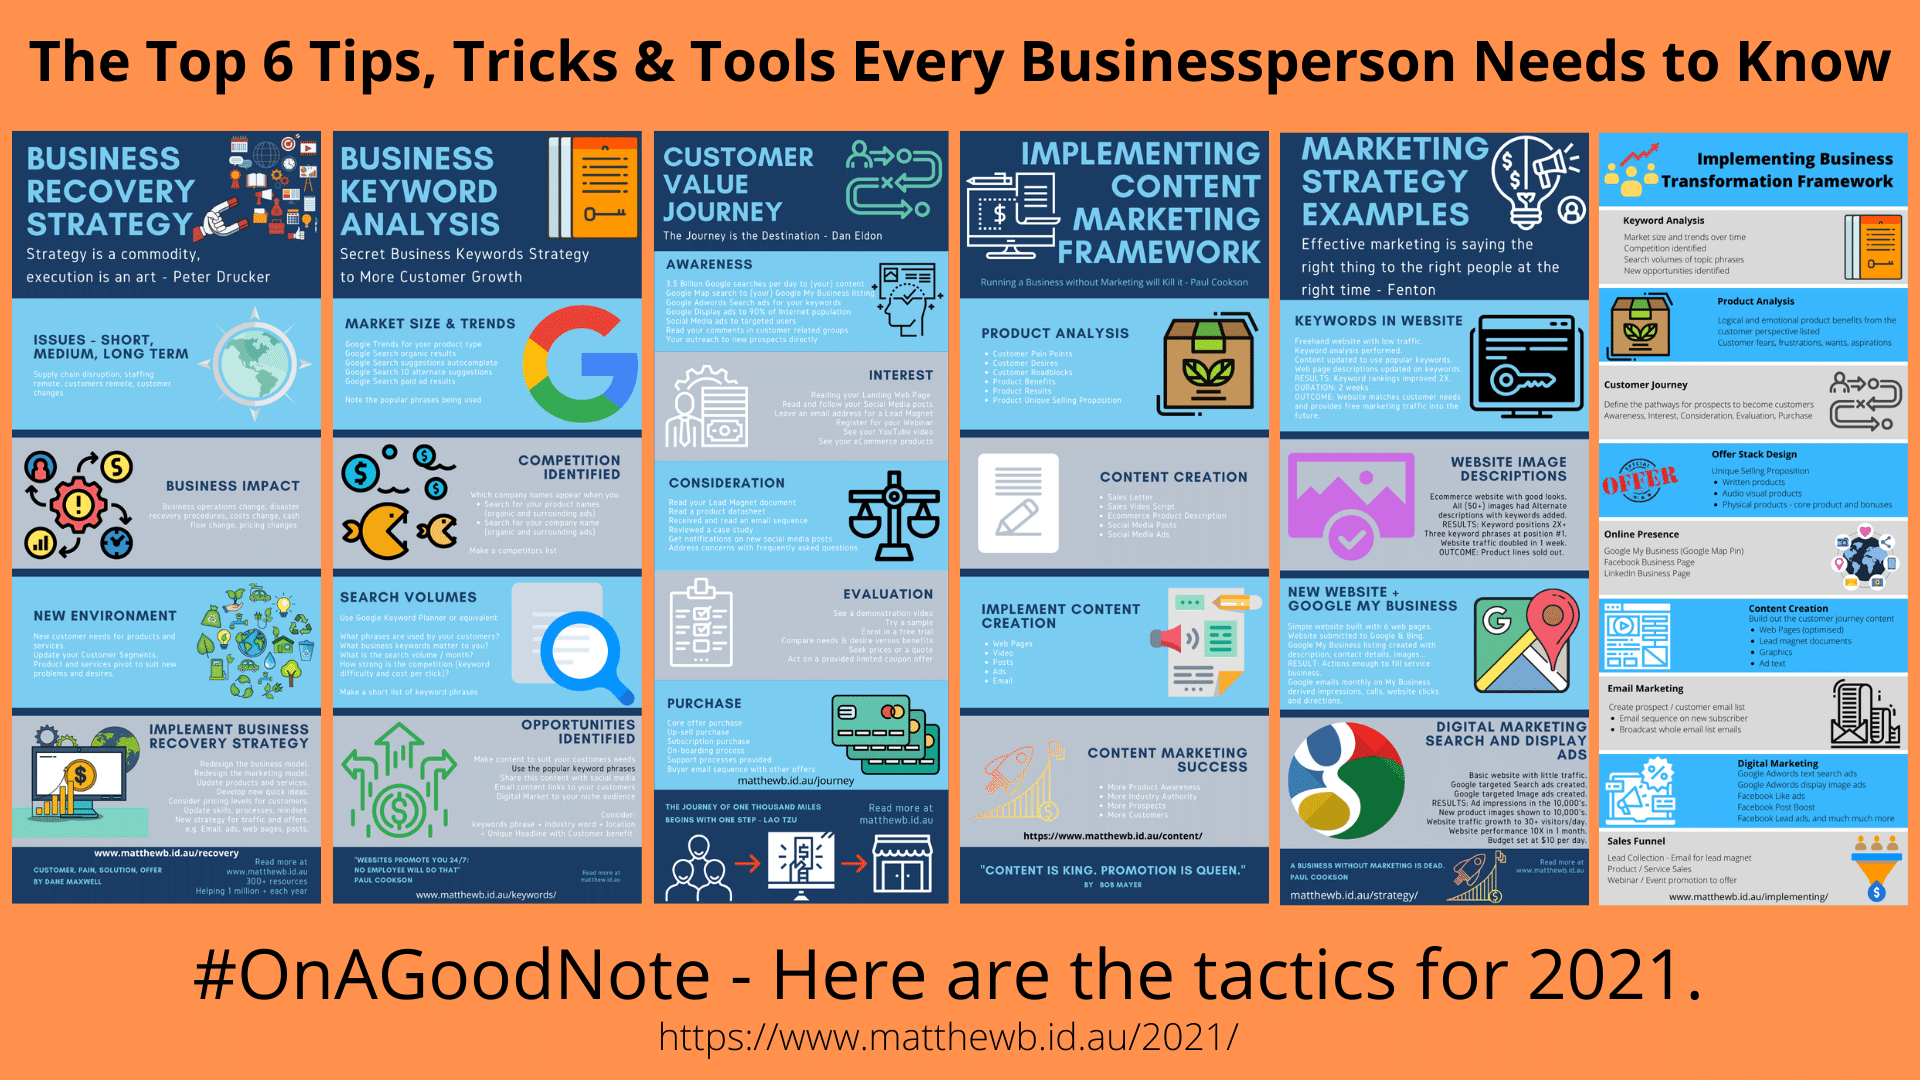 The top 6 tips, tricks and tools for every businessperson needs to know. Tactics for 2021.